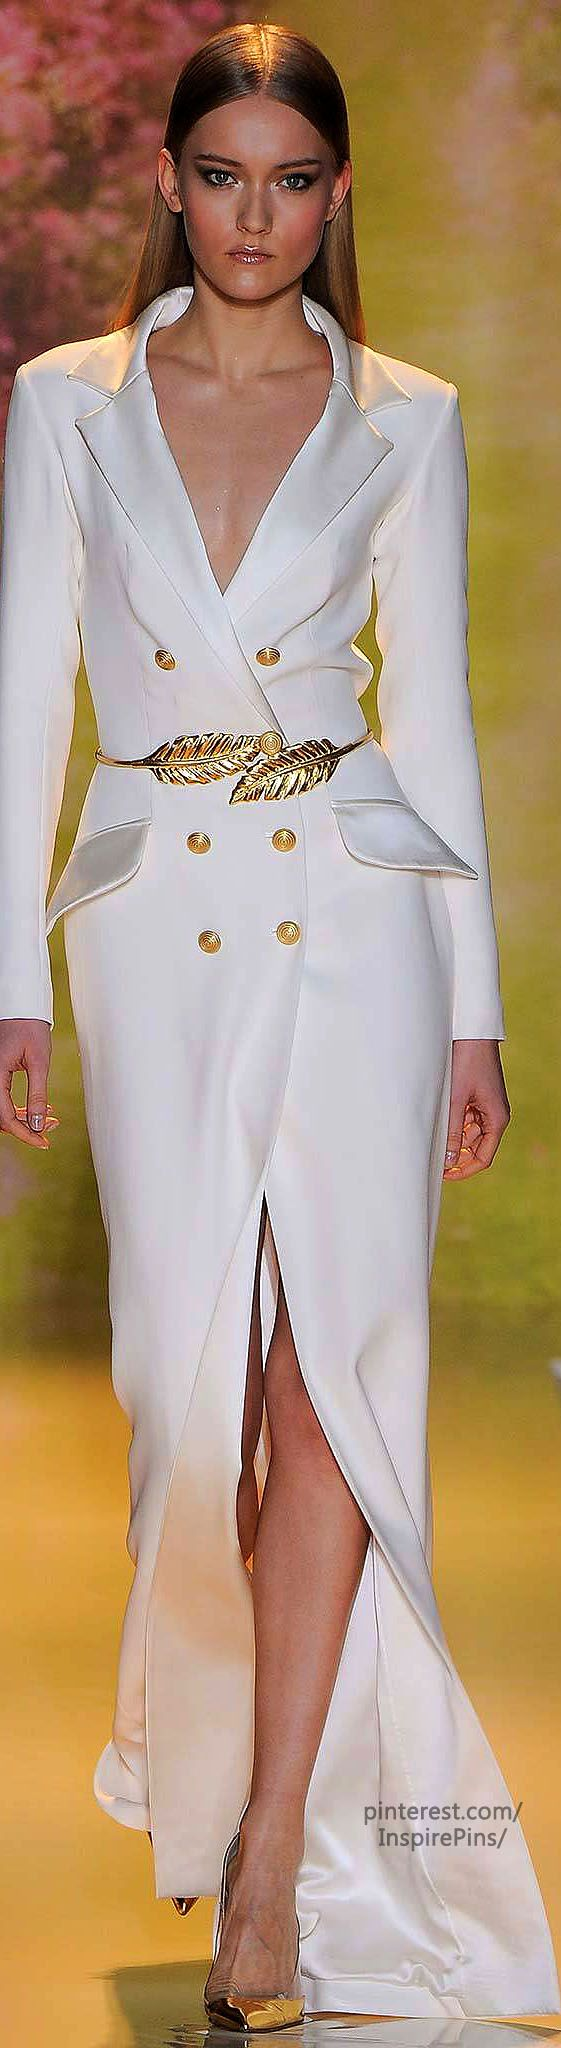 Spring 2014 Couture Zuhair Murad - Double Breasted Style - Long Coat (dress) - White & Gold